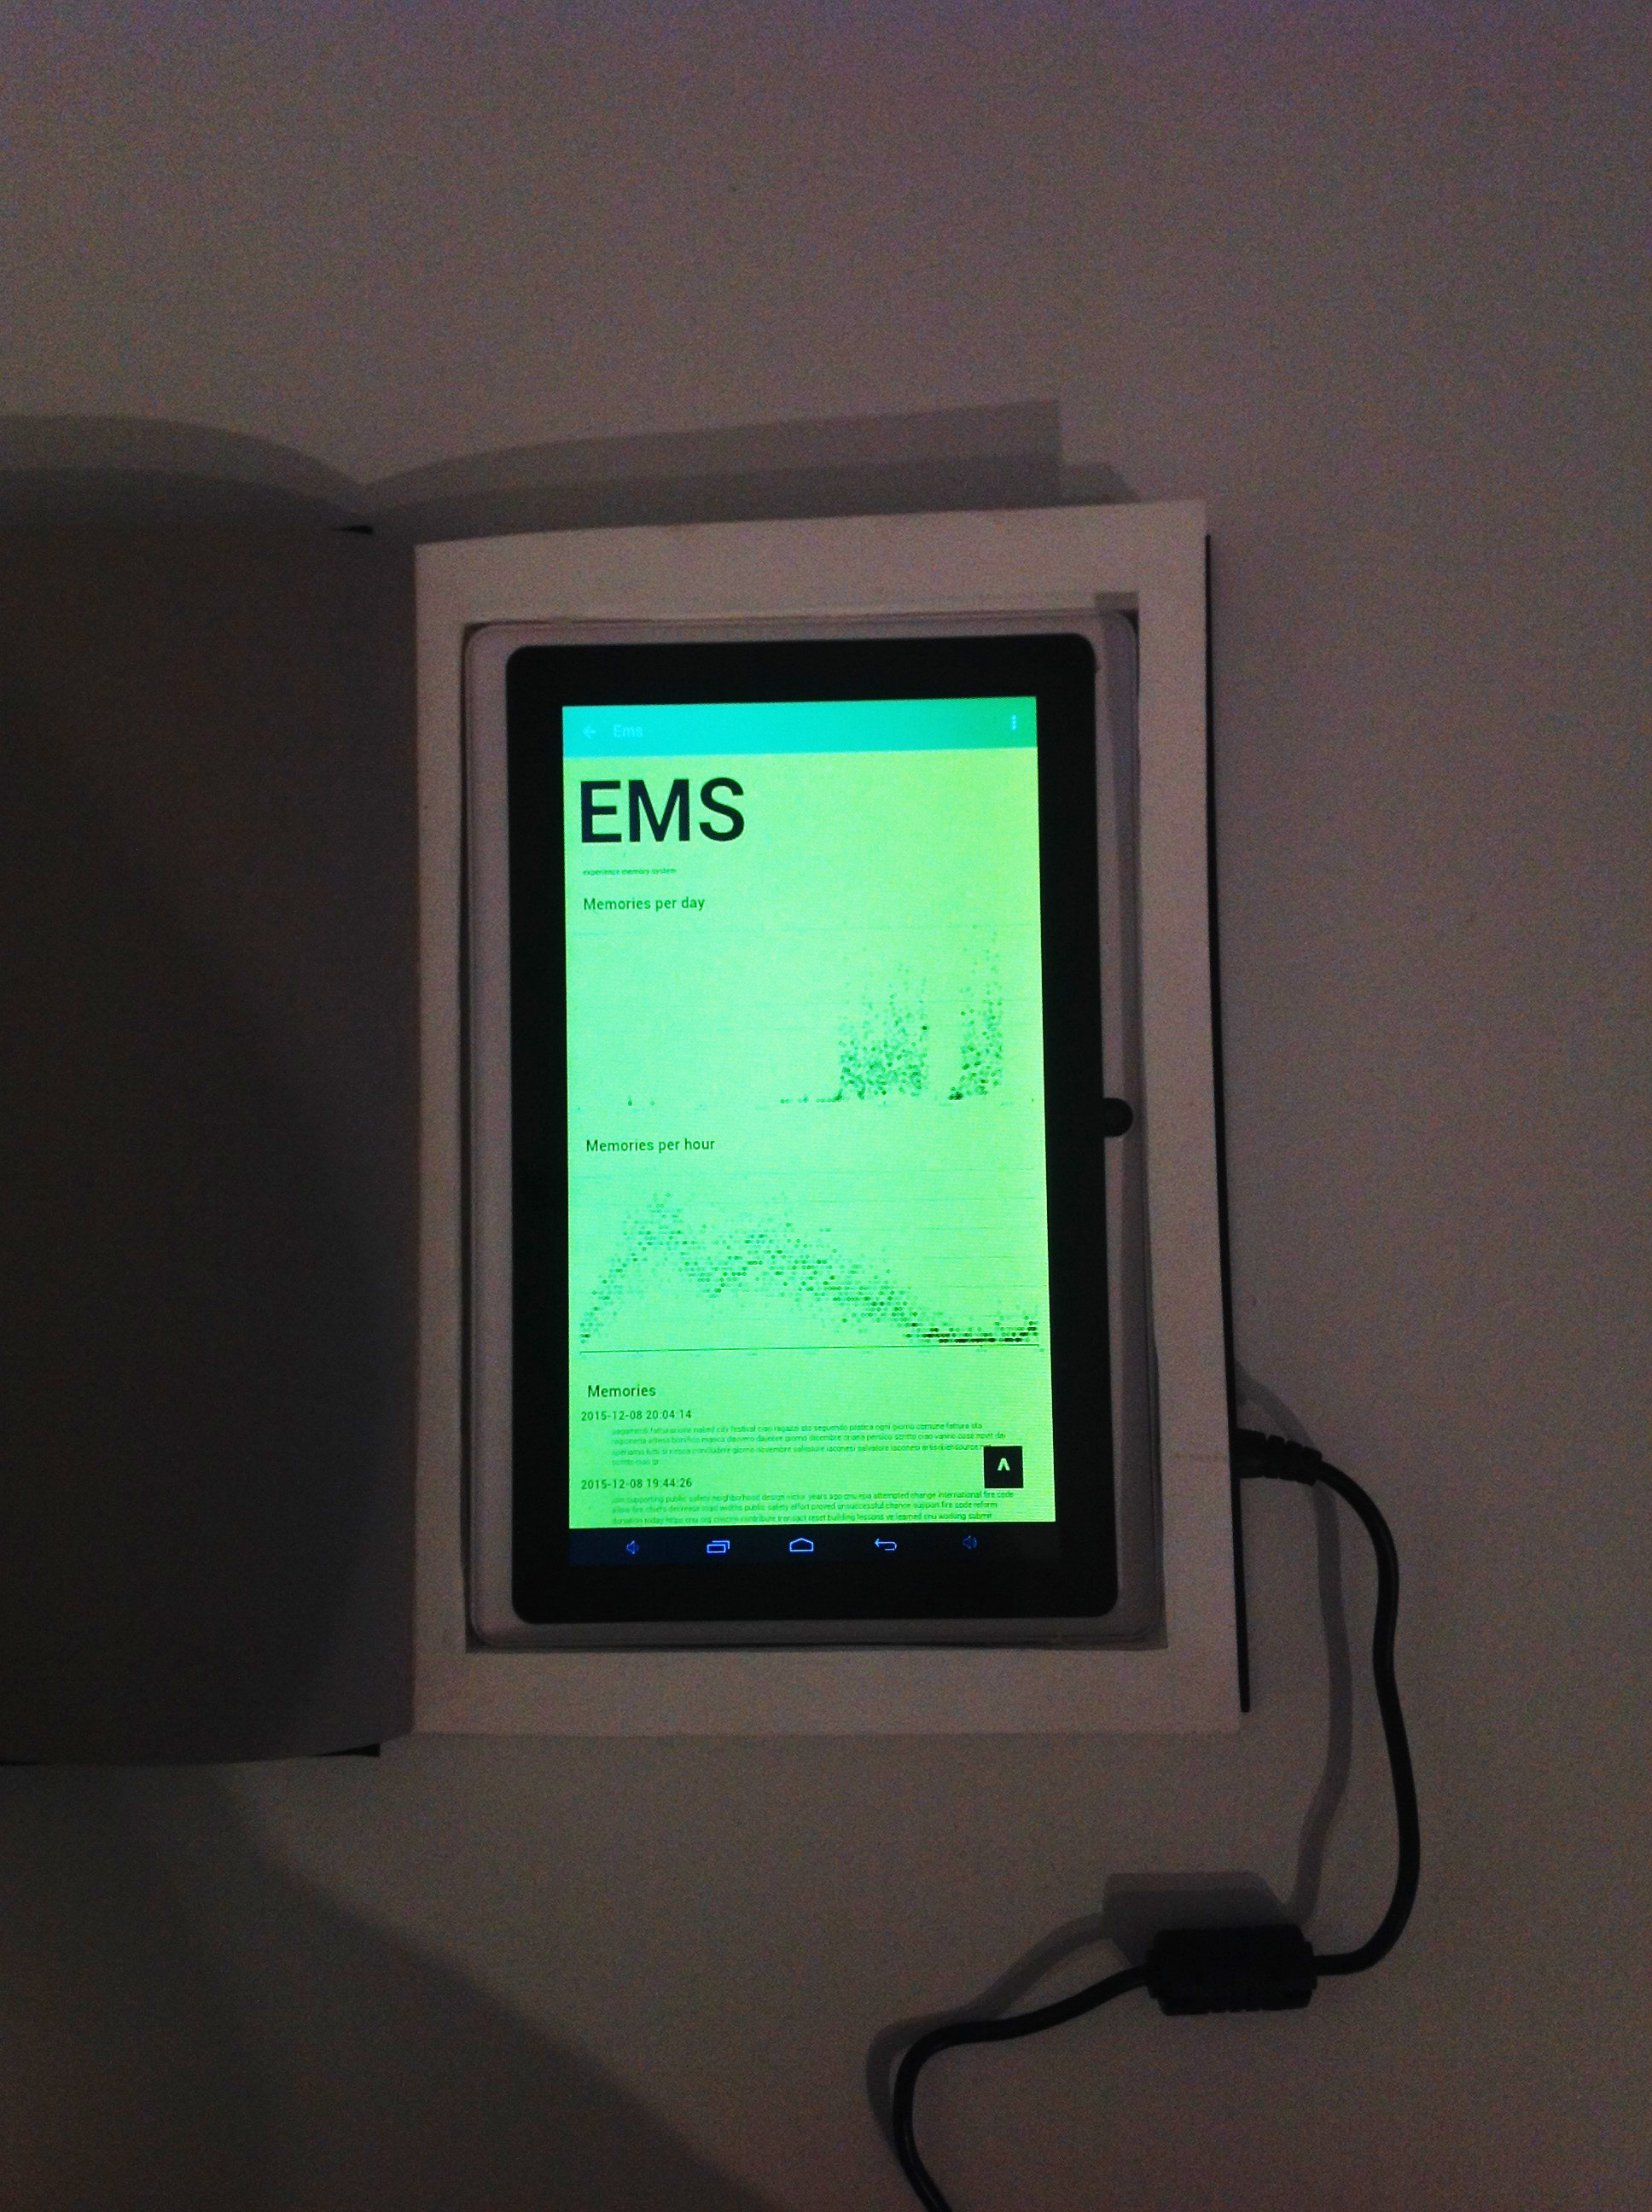 GhostWriter, the interface of the EMS